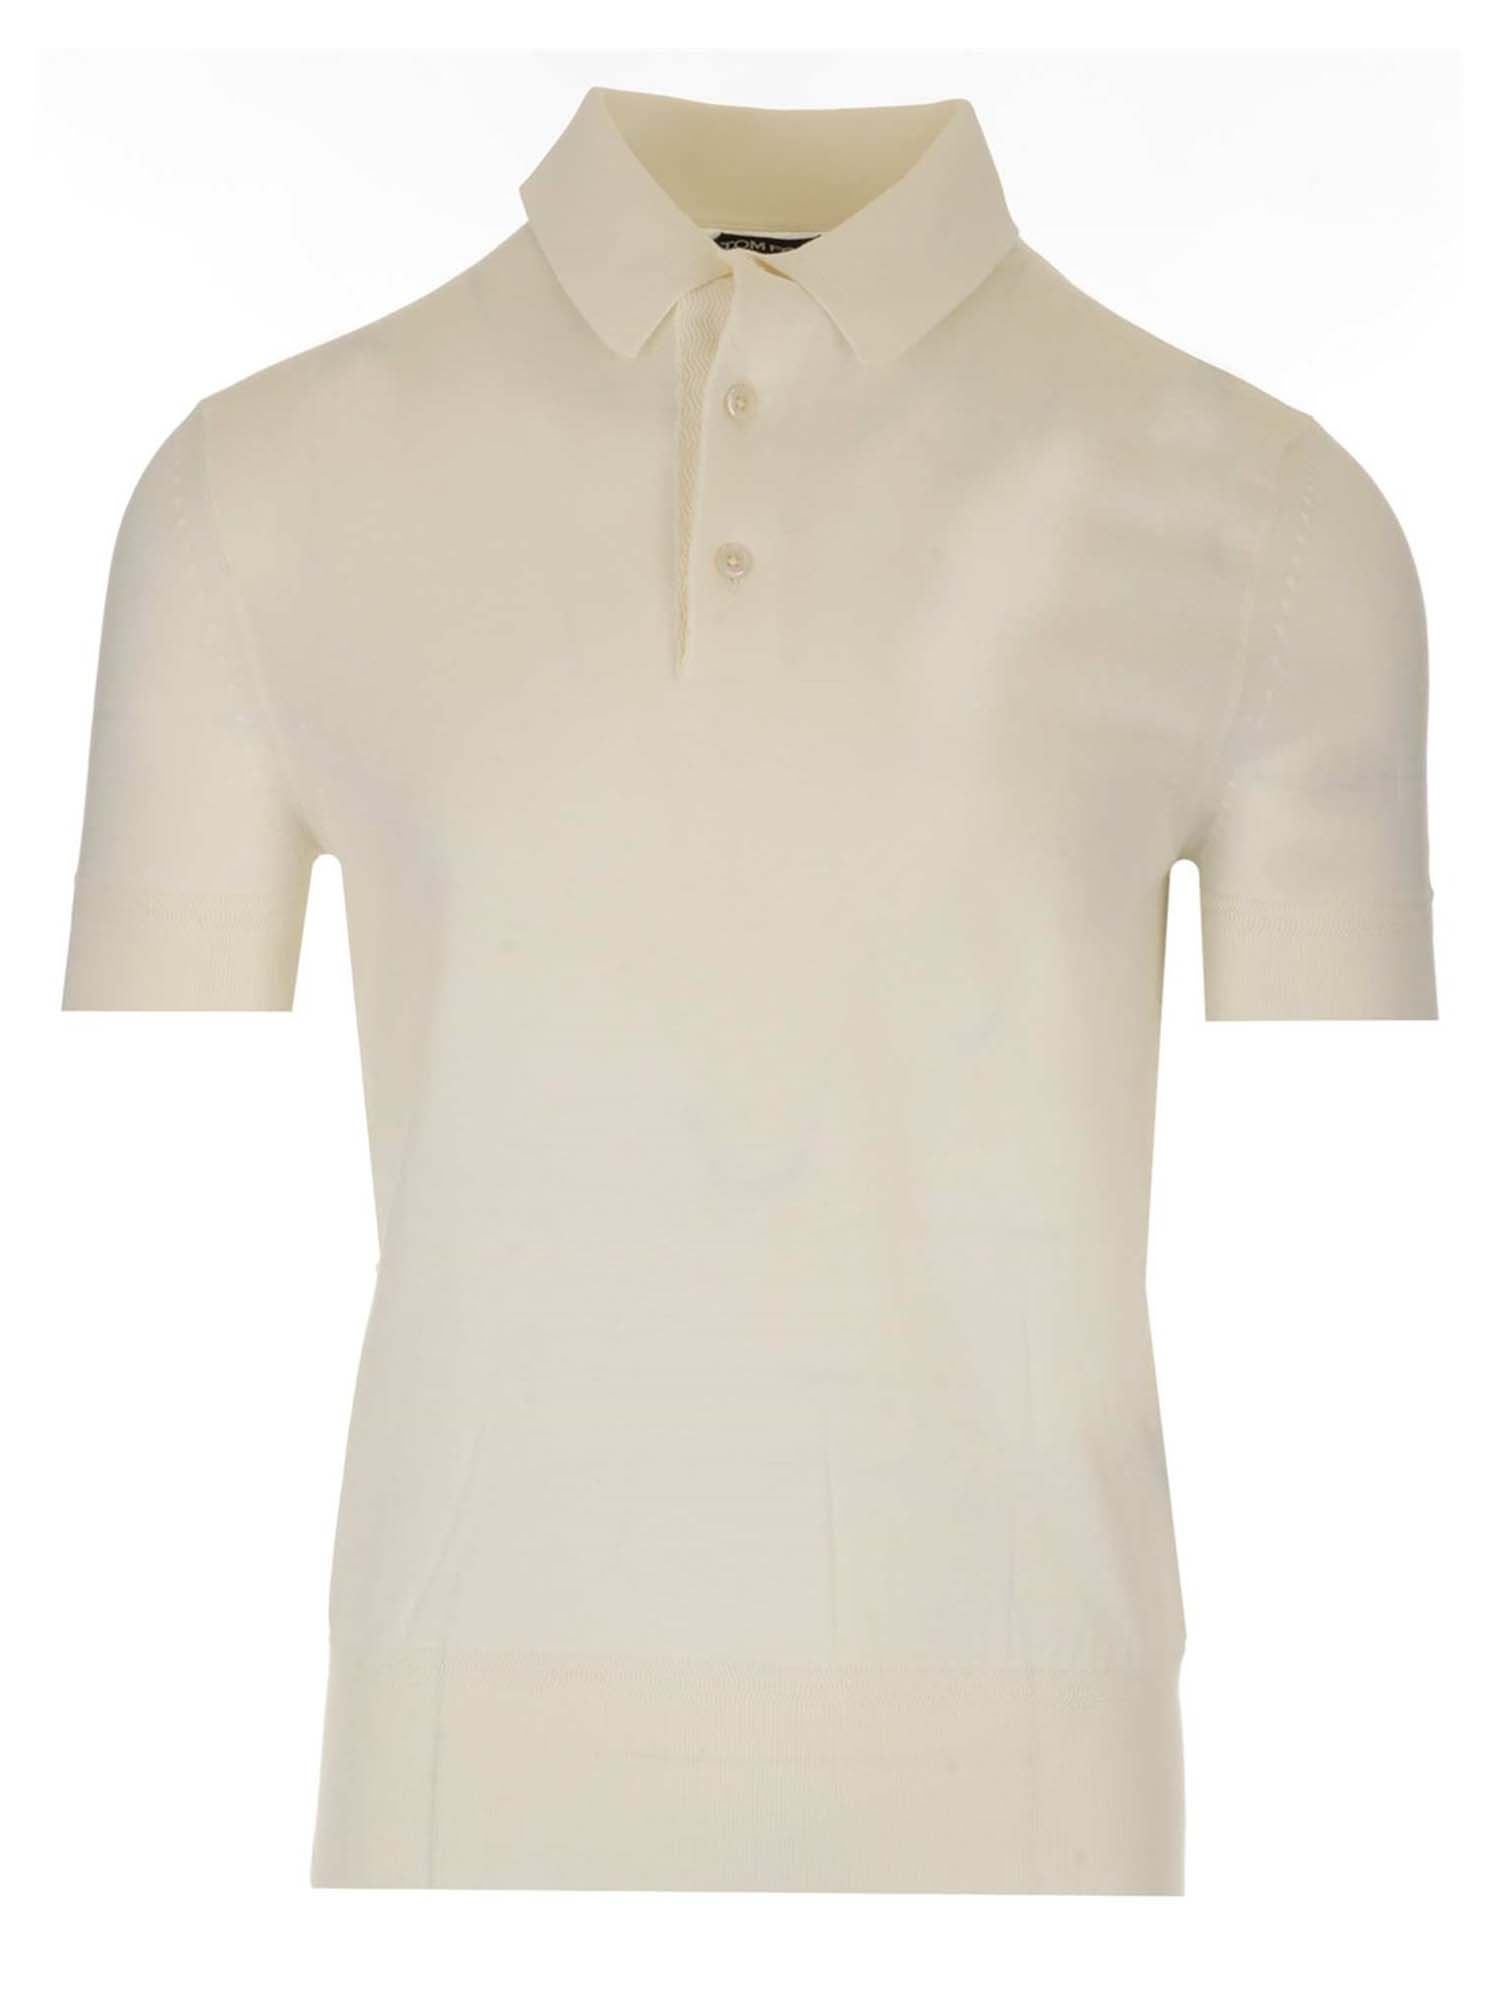 Tom Ford Cottons JERSEY POLO SHIRT IN WHITE